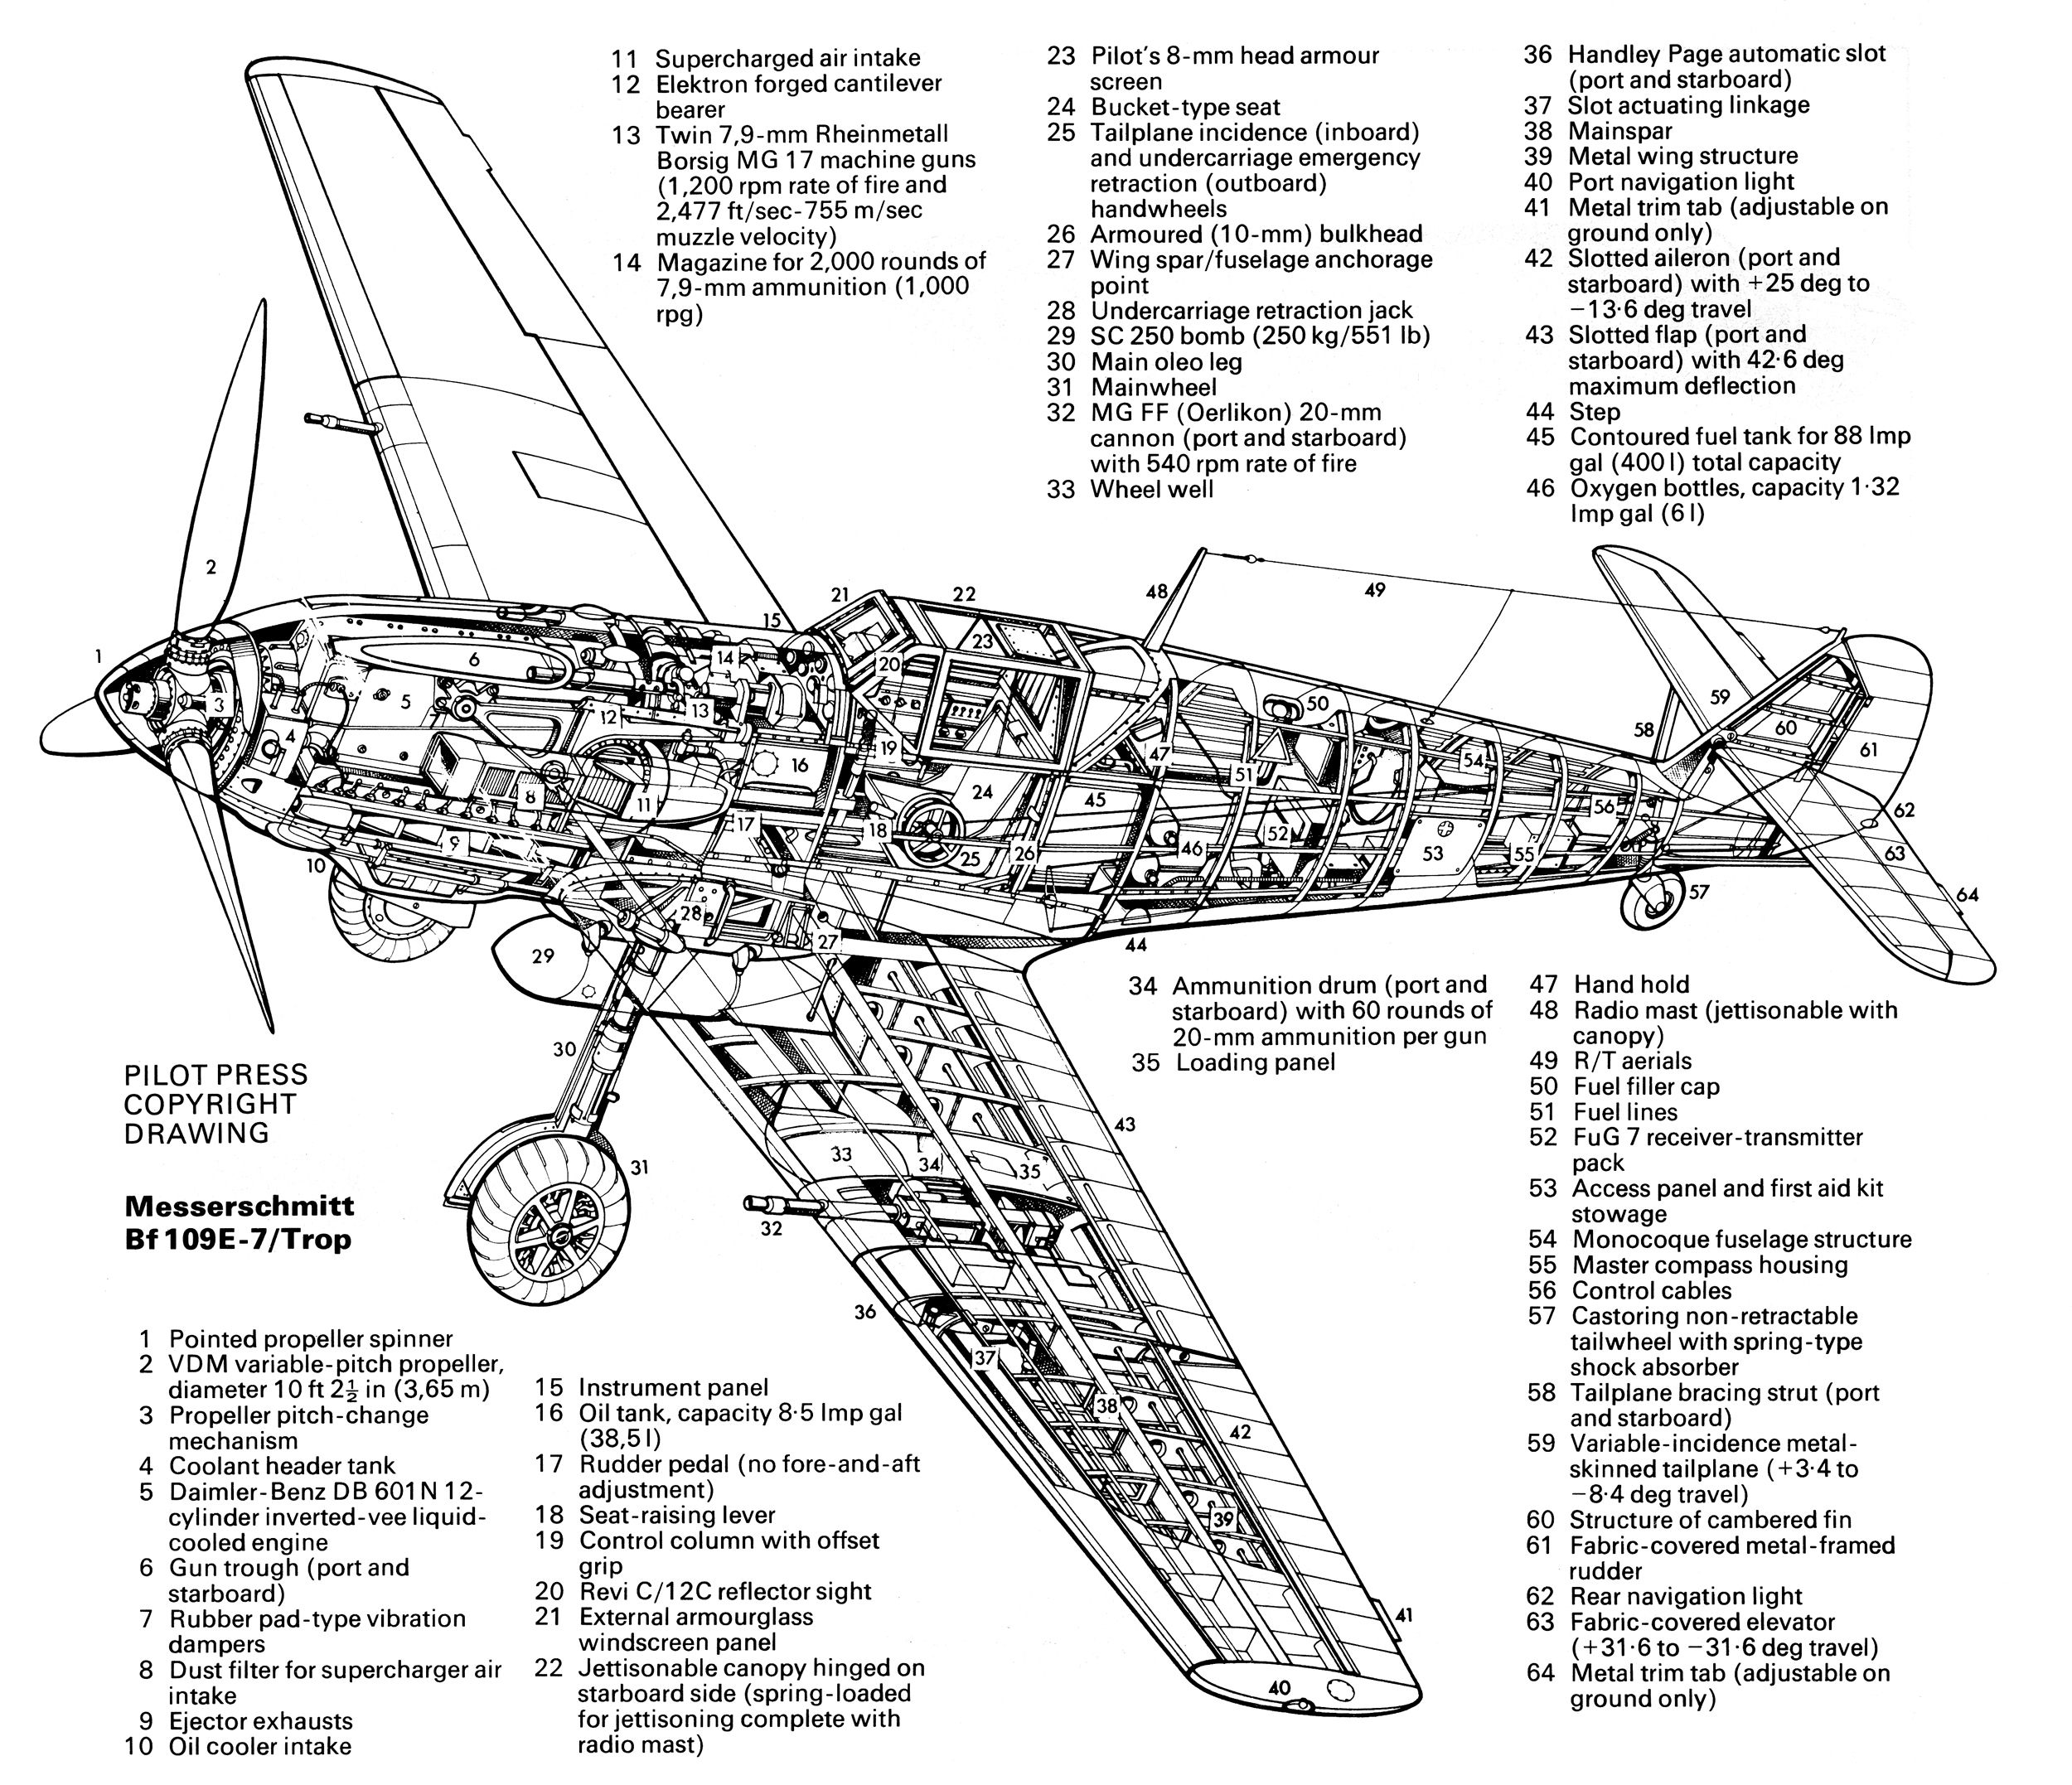 Messerschmitt Bf 109 Blueprints Pictures 5 Hd Wallpapers